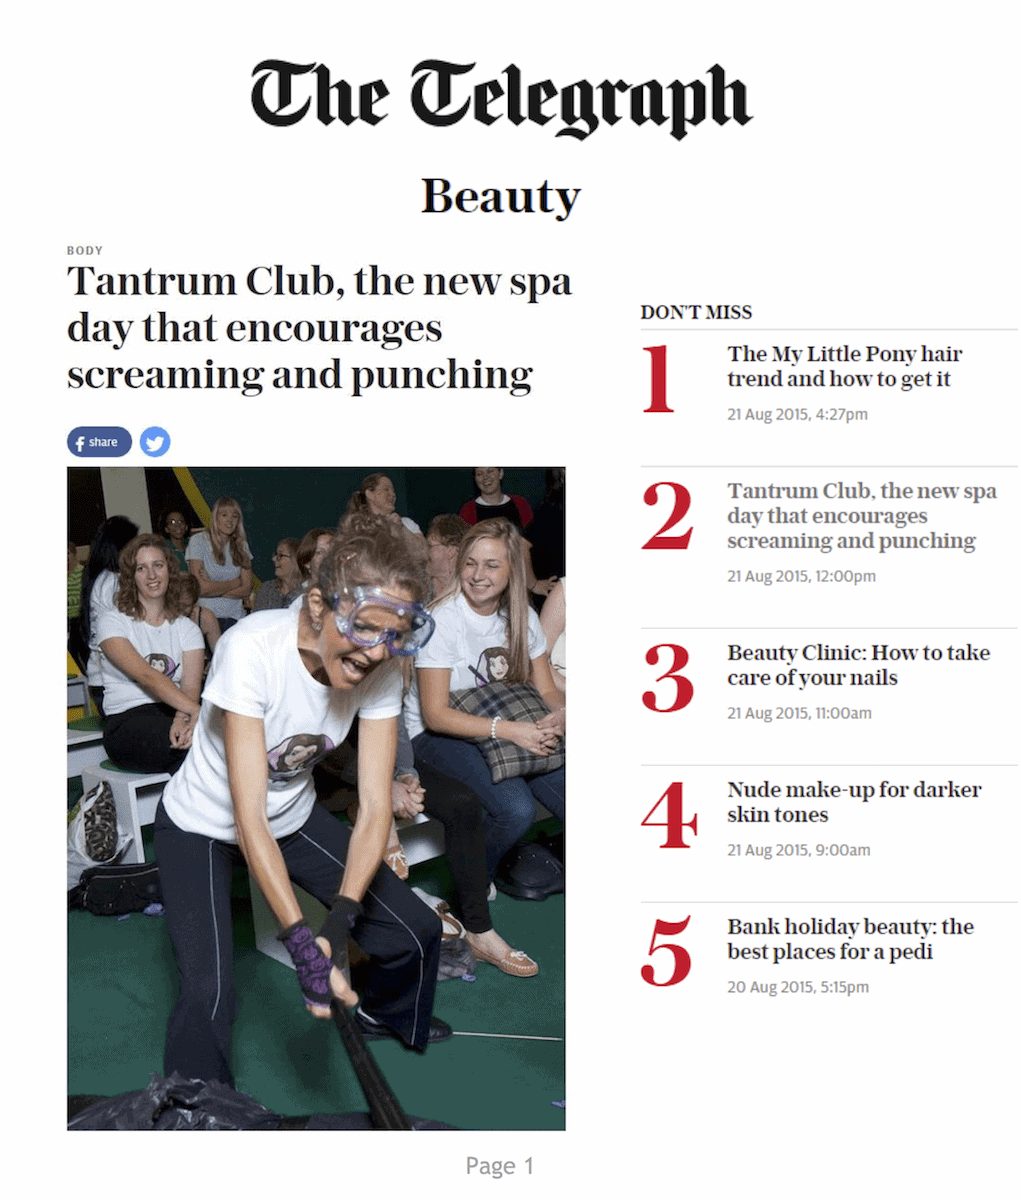 Telegraph.co.uk, 21 August 2015